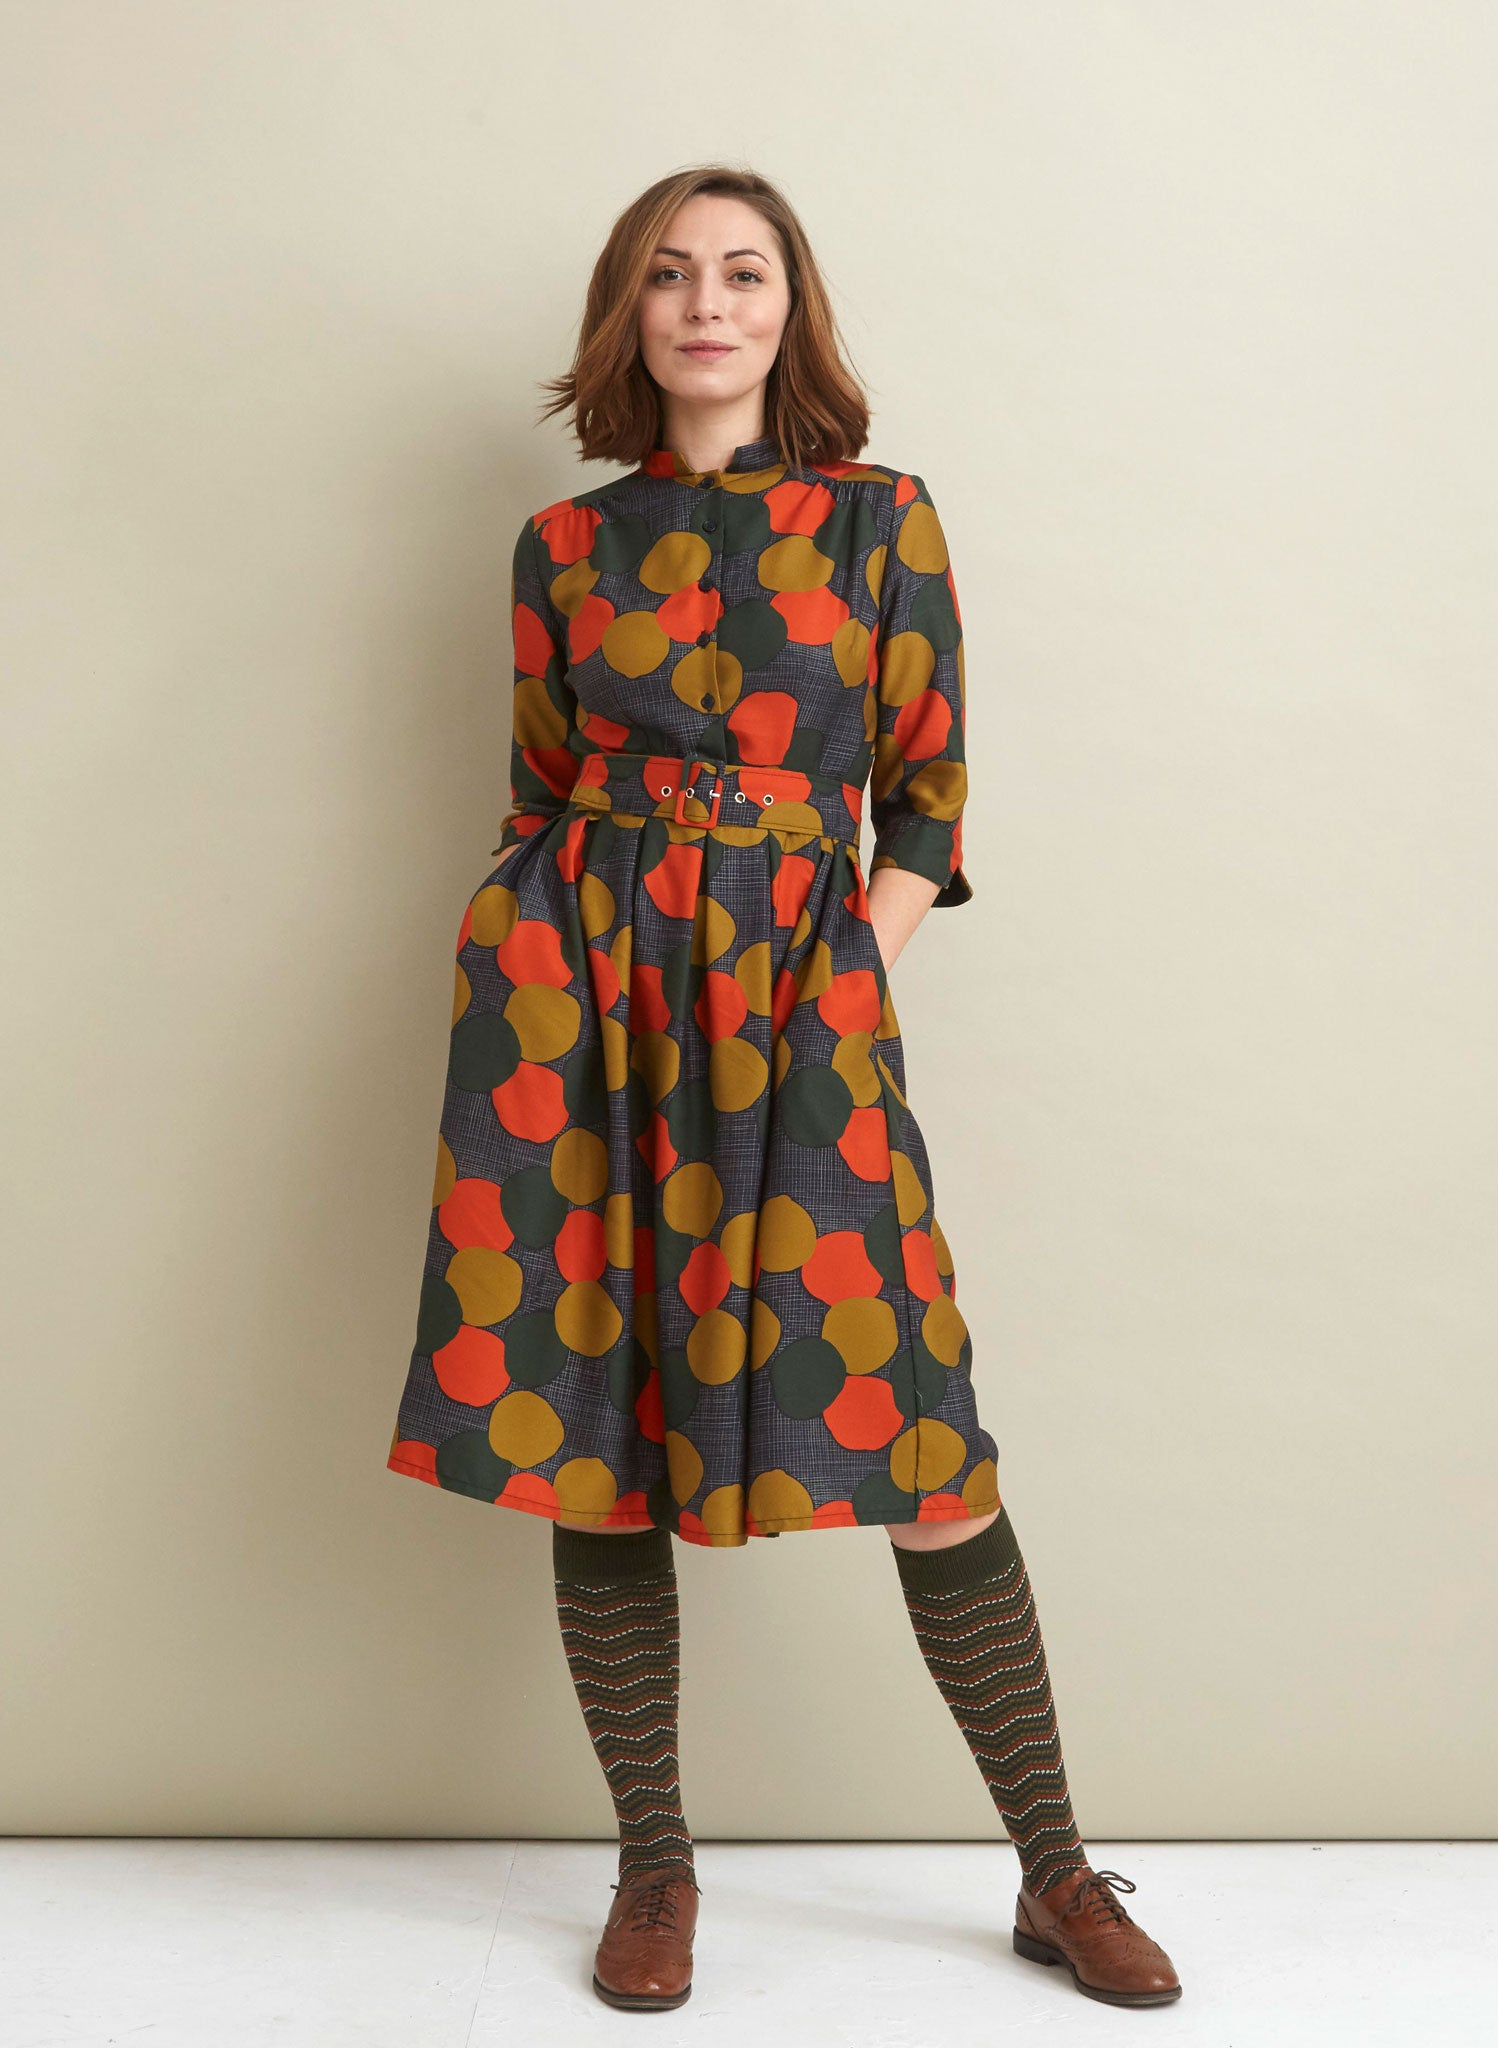 Cynthia - Charcoal Autumn Forest Dress - Tencel